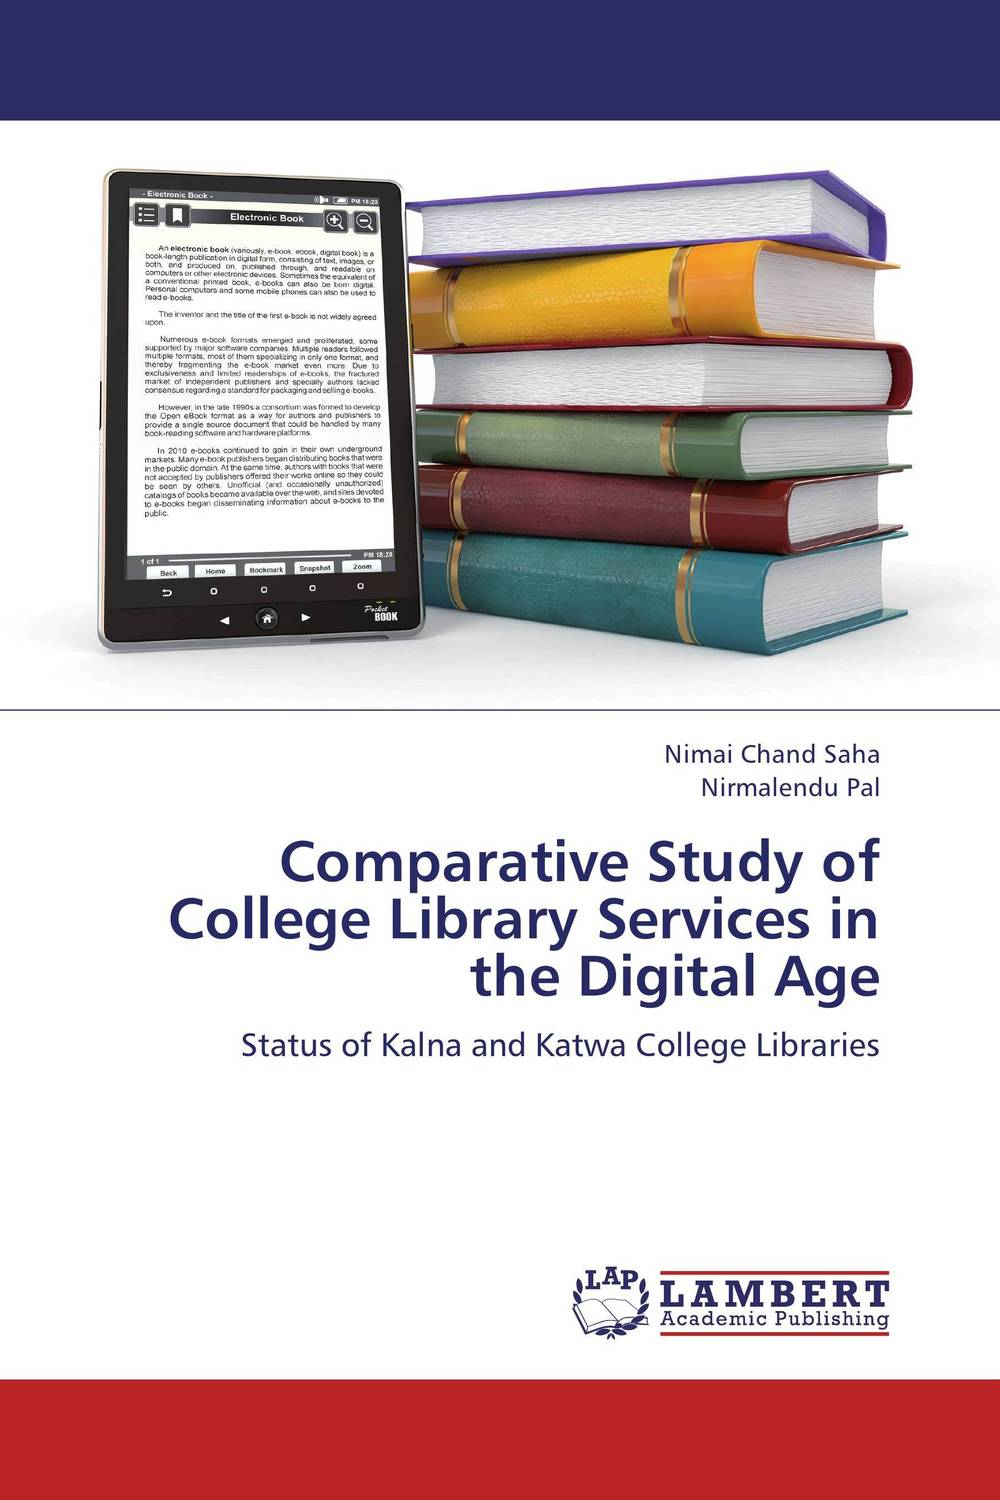 Comparative Study of College Library Services in the Digital Age rakesh bhatia surinder bir singh and harpreet kaur organizational development comparative study of engineering colleges